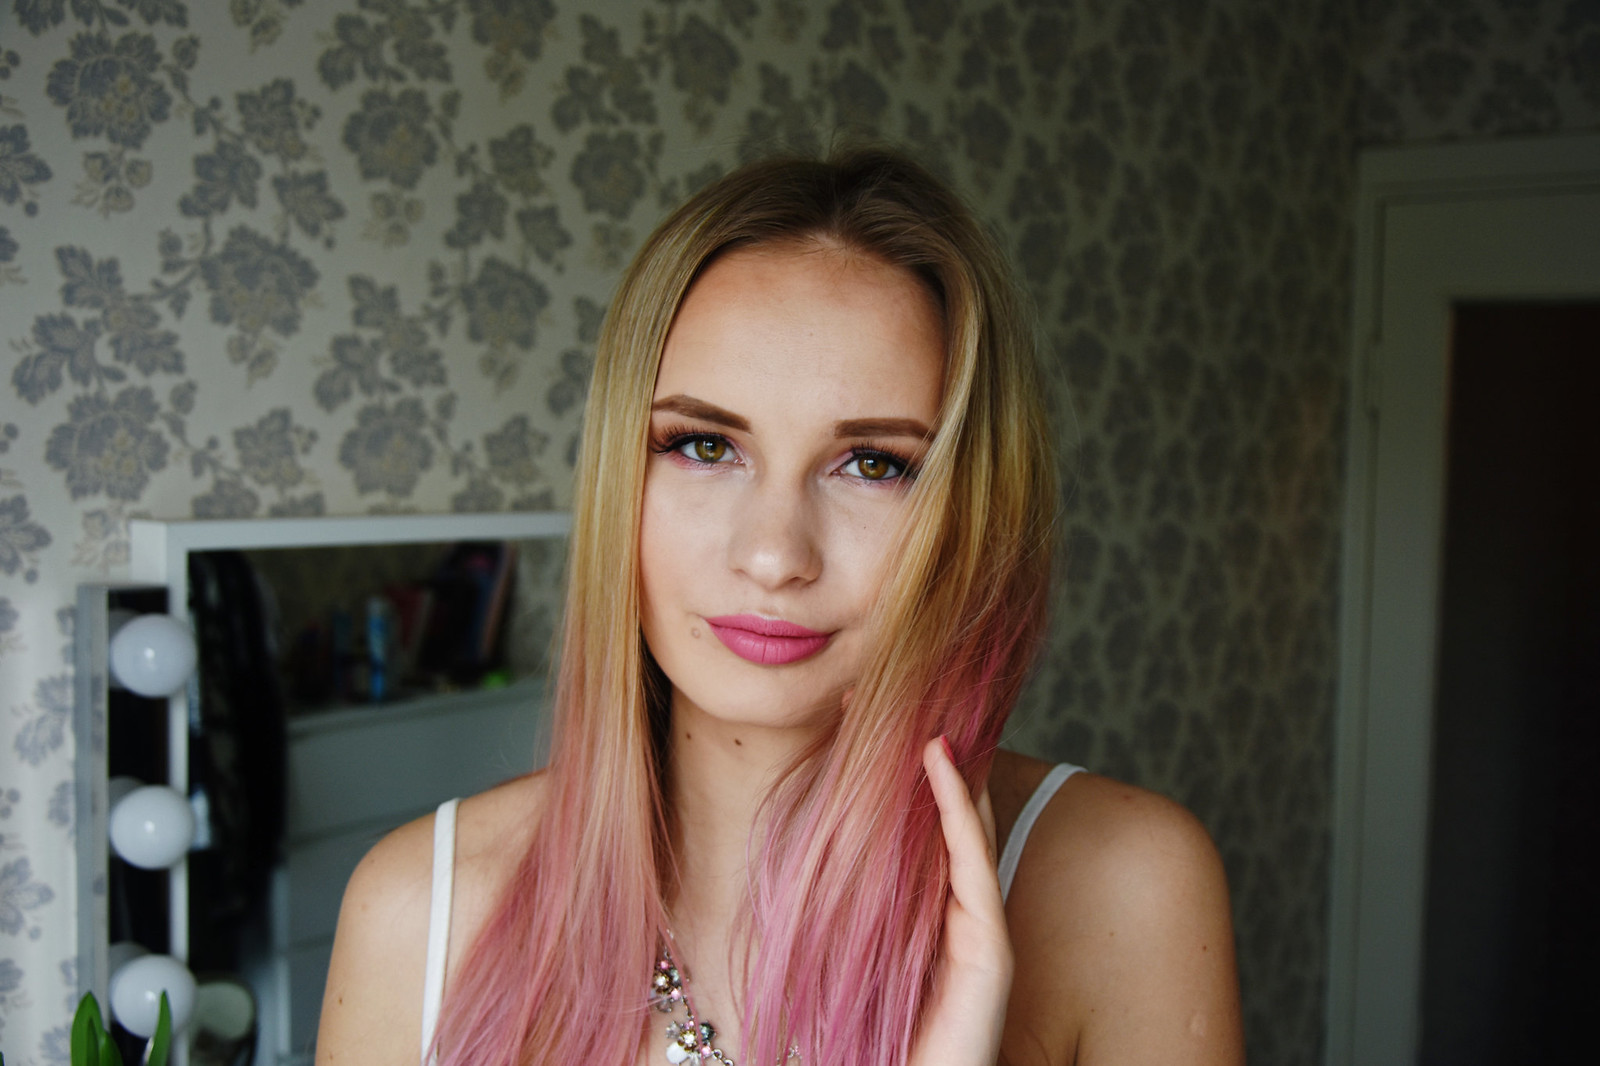 L'Oreal Colorista Dirty Pink Hair washout